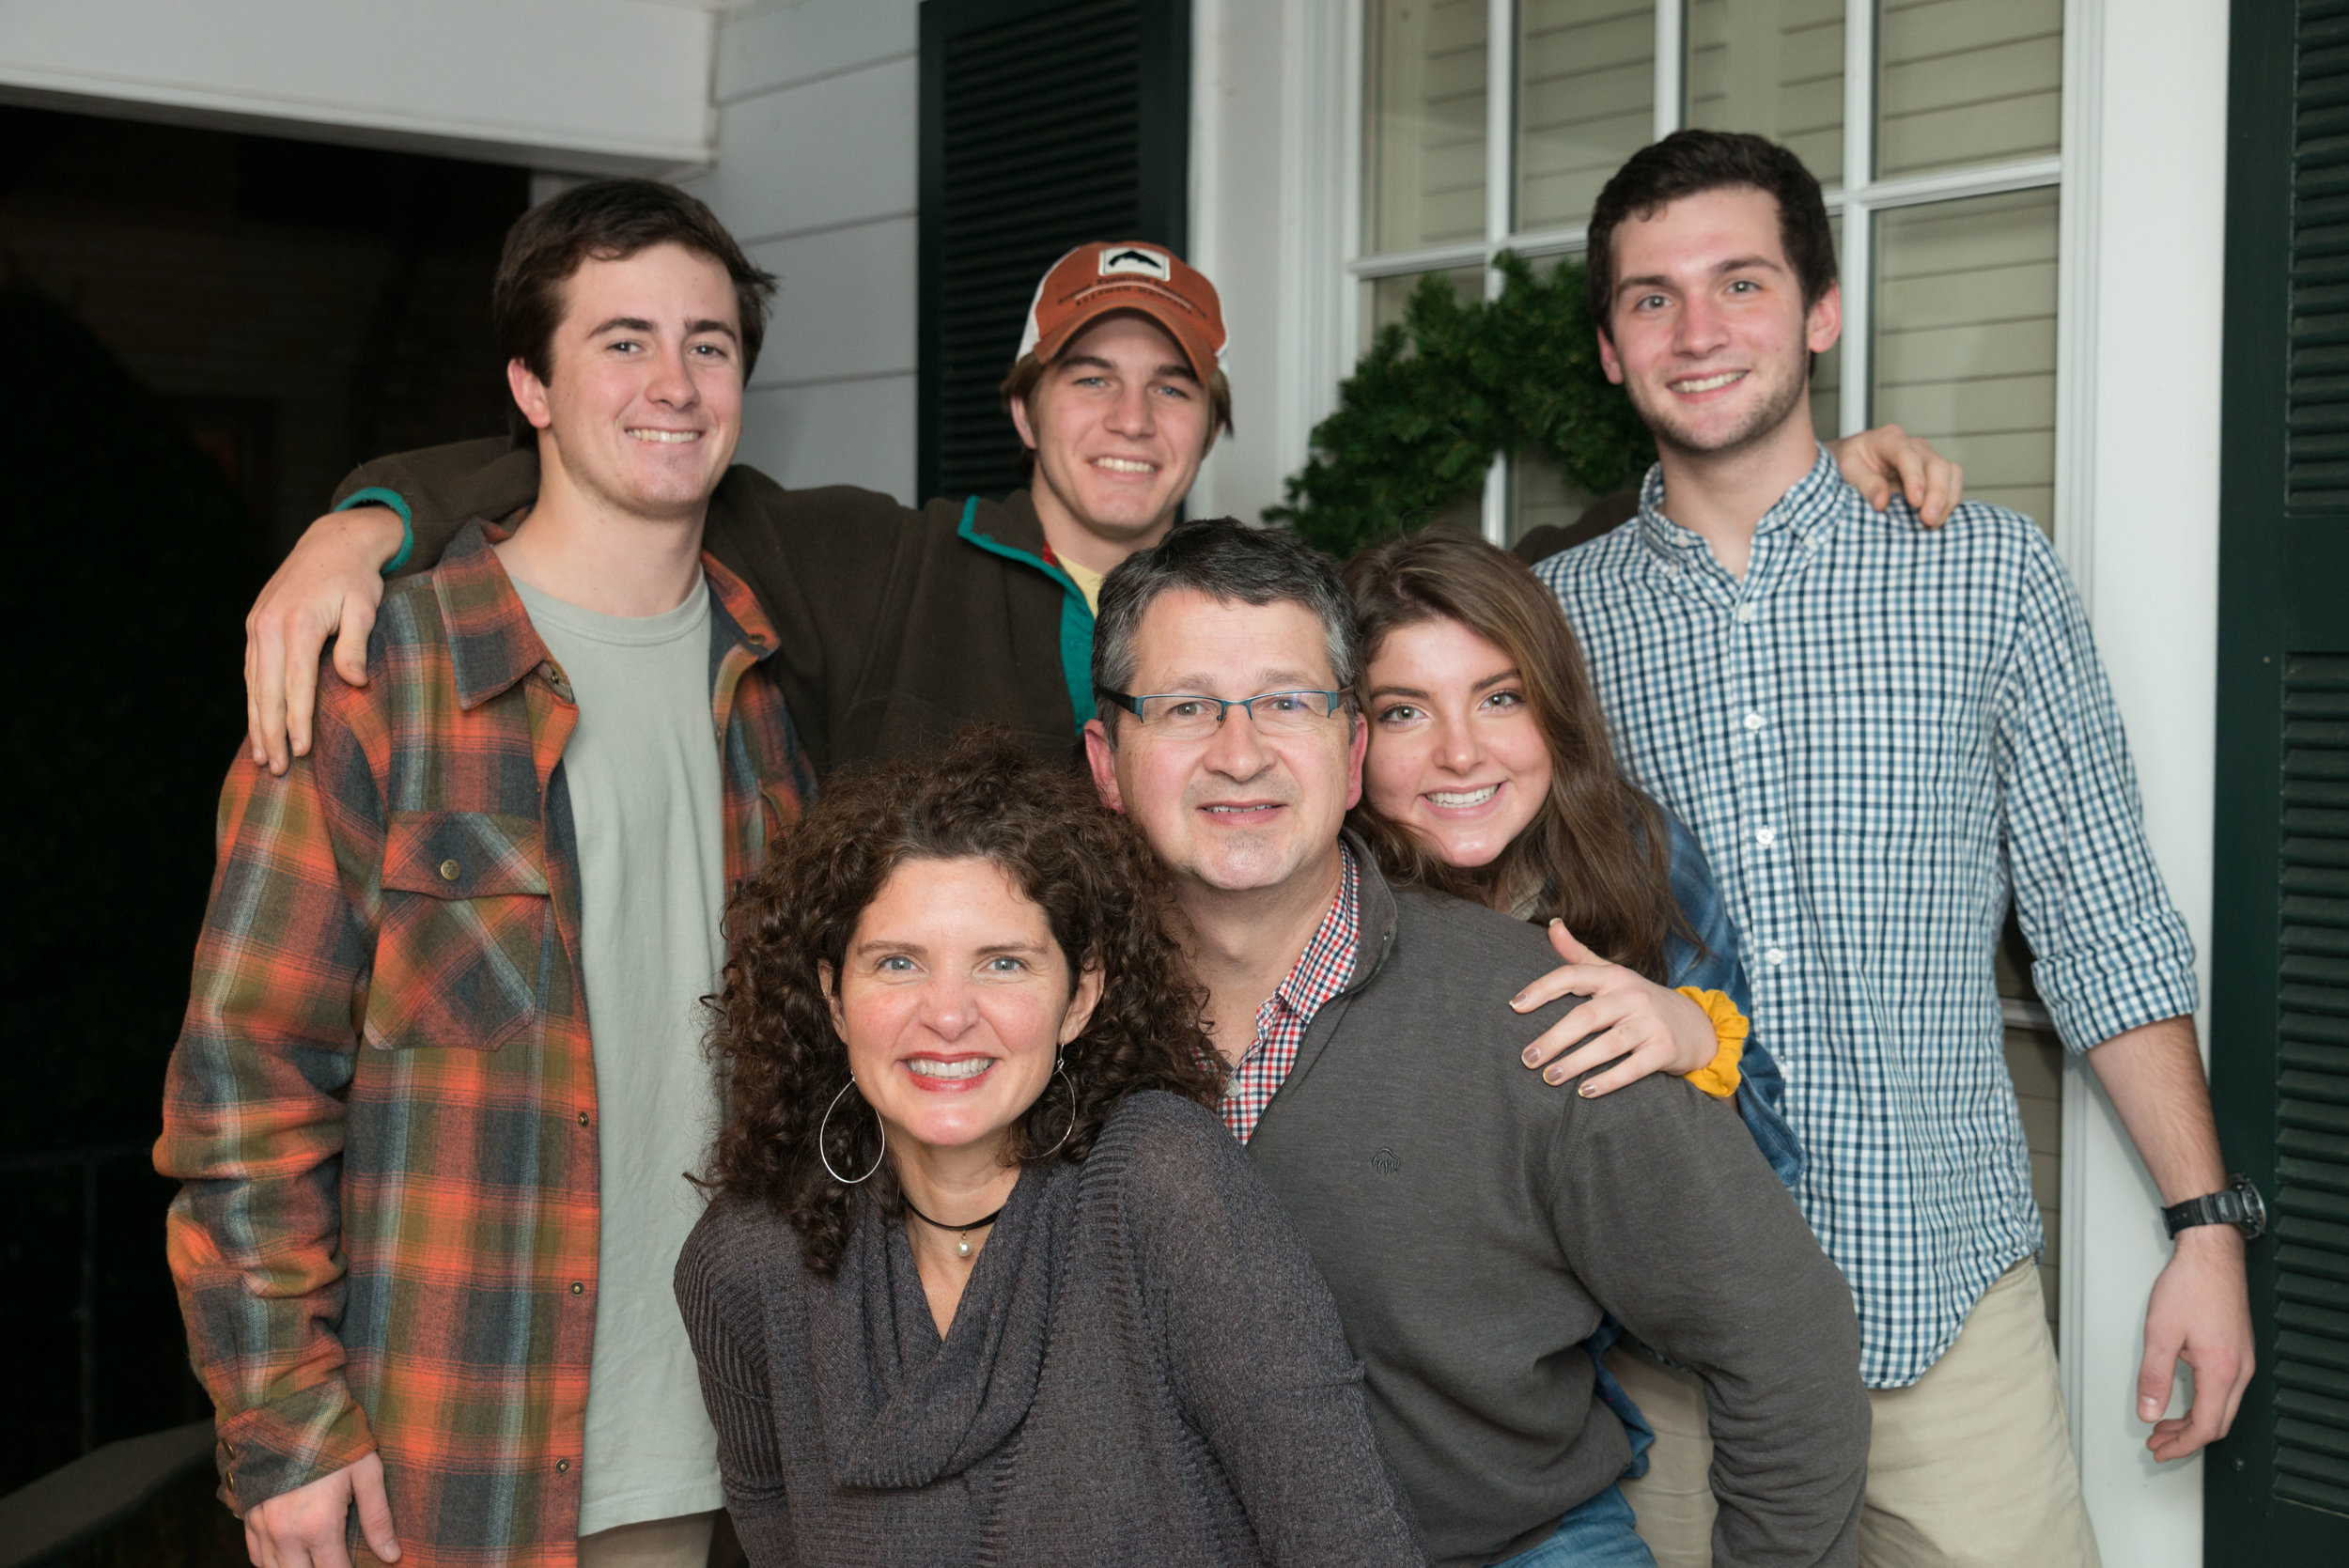 Getting along with stepkids